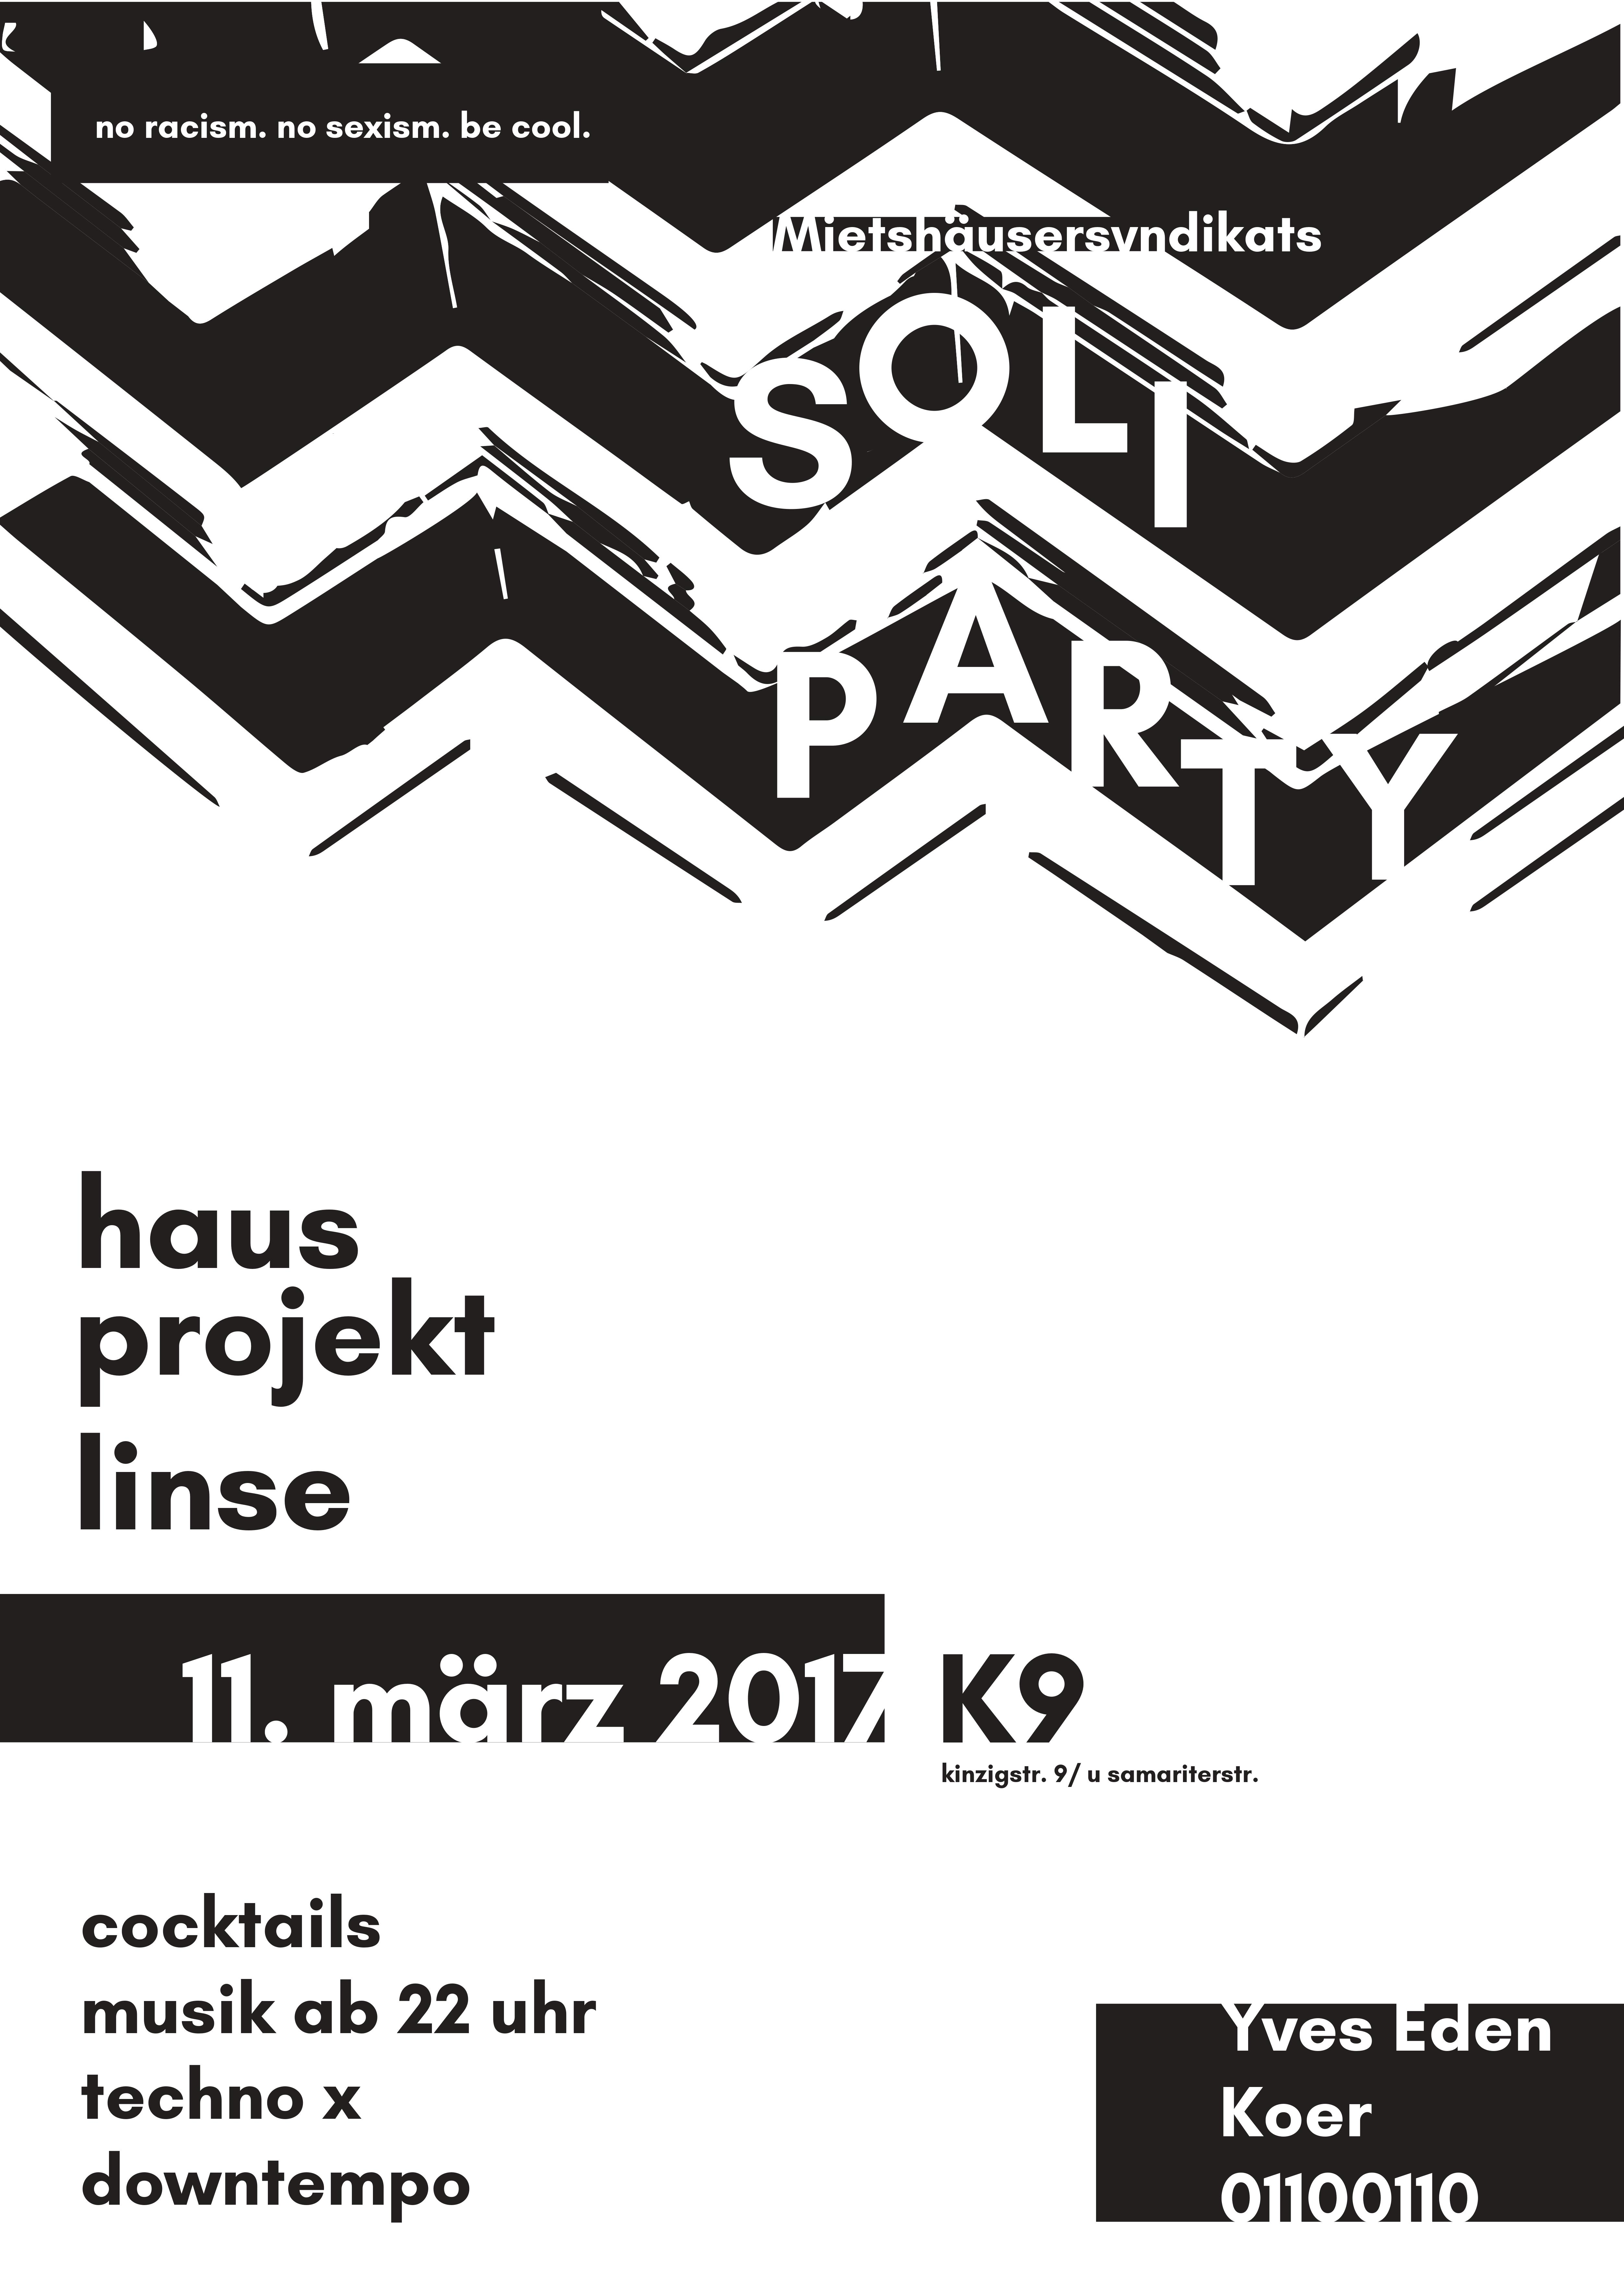 solipartyk9